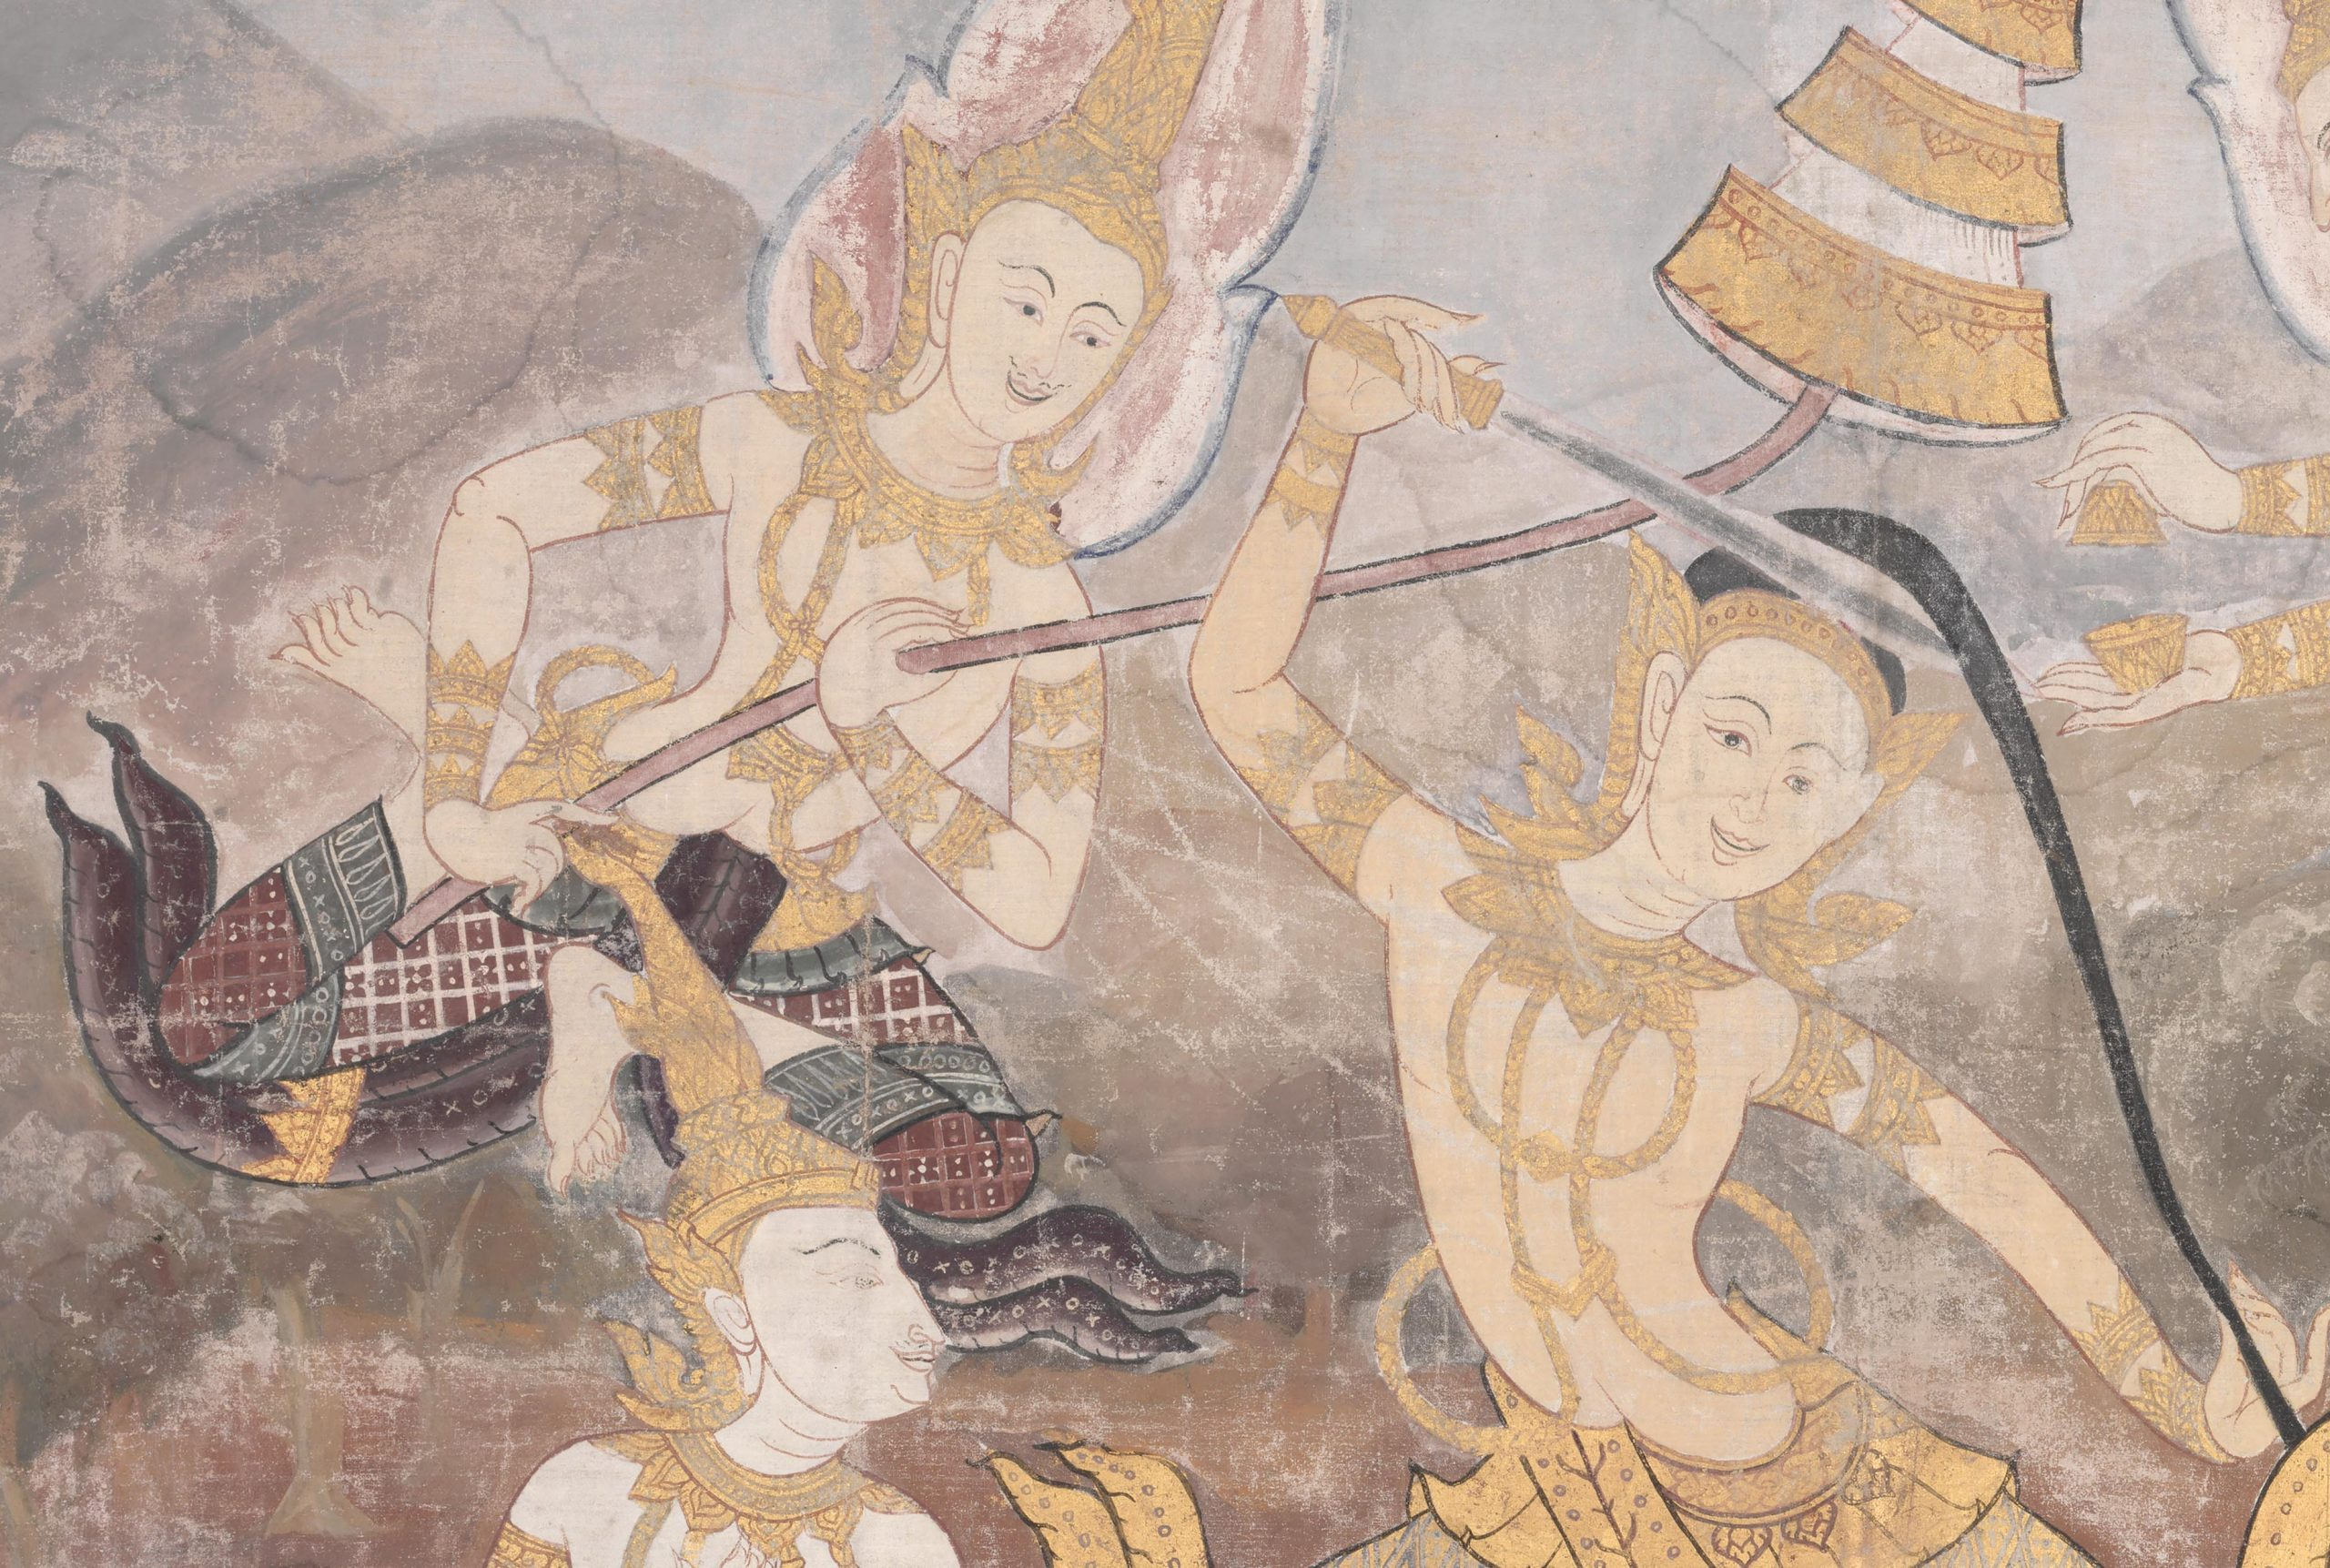 Painting from Thailand showing smiling figures, one with a sword